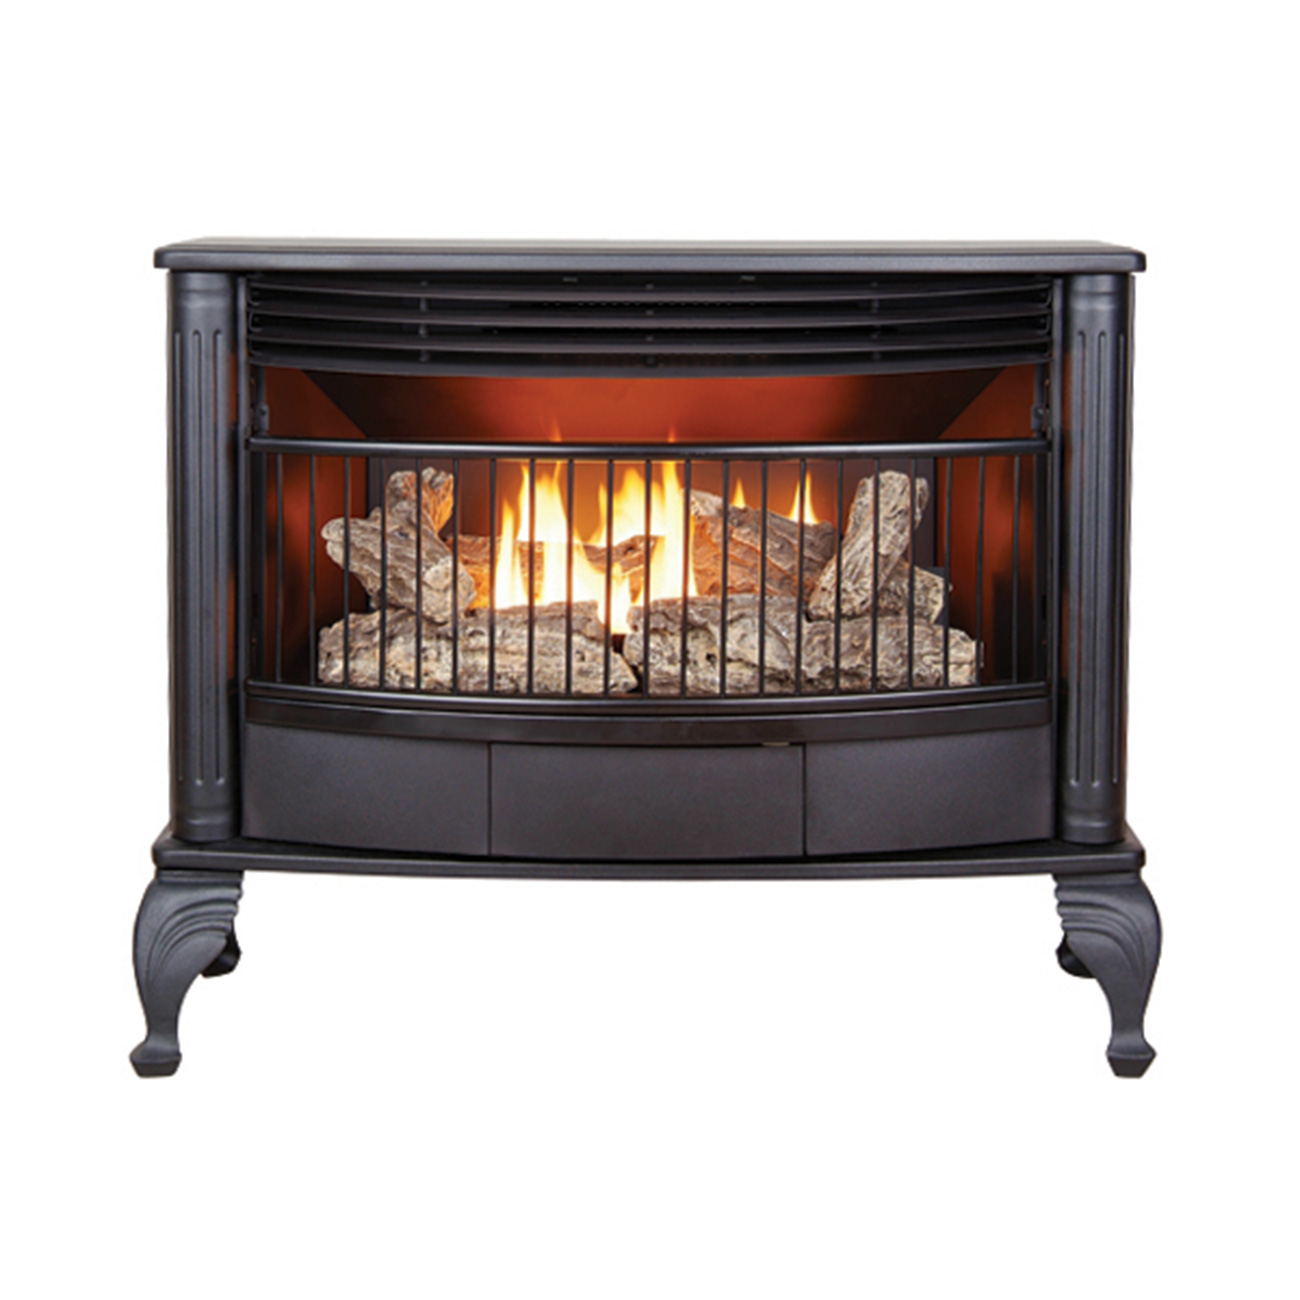 Direct Vent Gas Fireplace Ratings Procom Heating Fireplace Inserts Garage Heaters Gas Logs